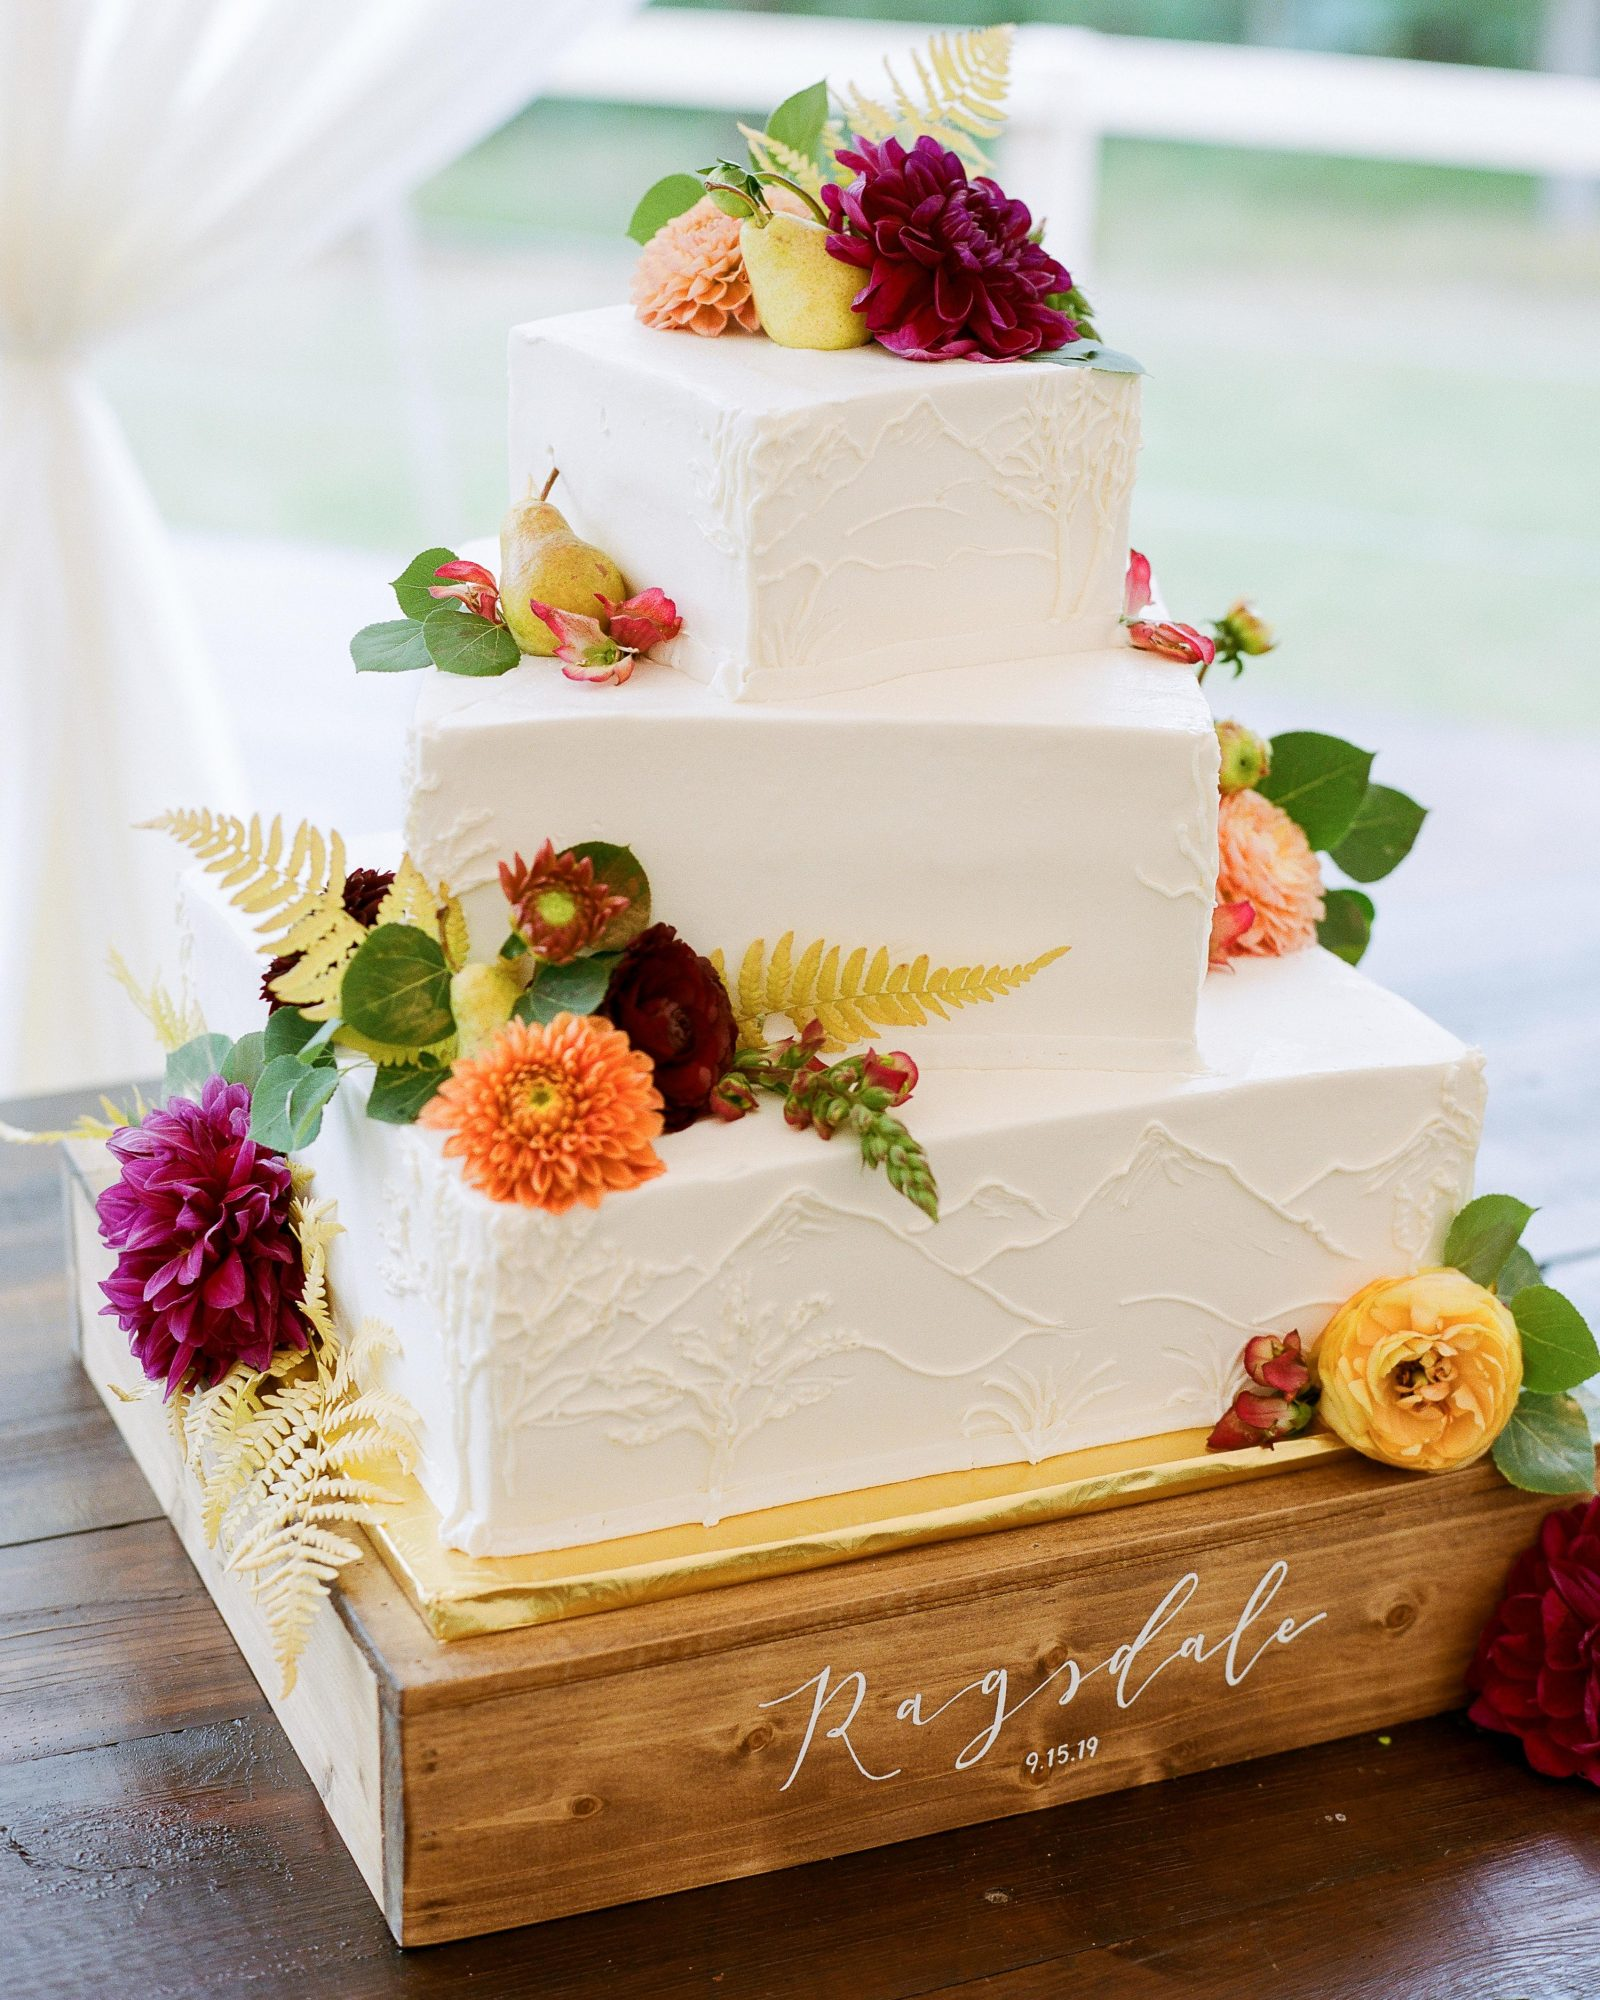 jill phil wedding three-tiered cake with flower accents